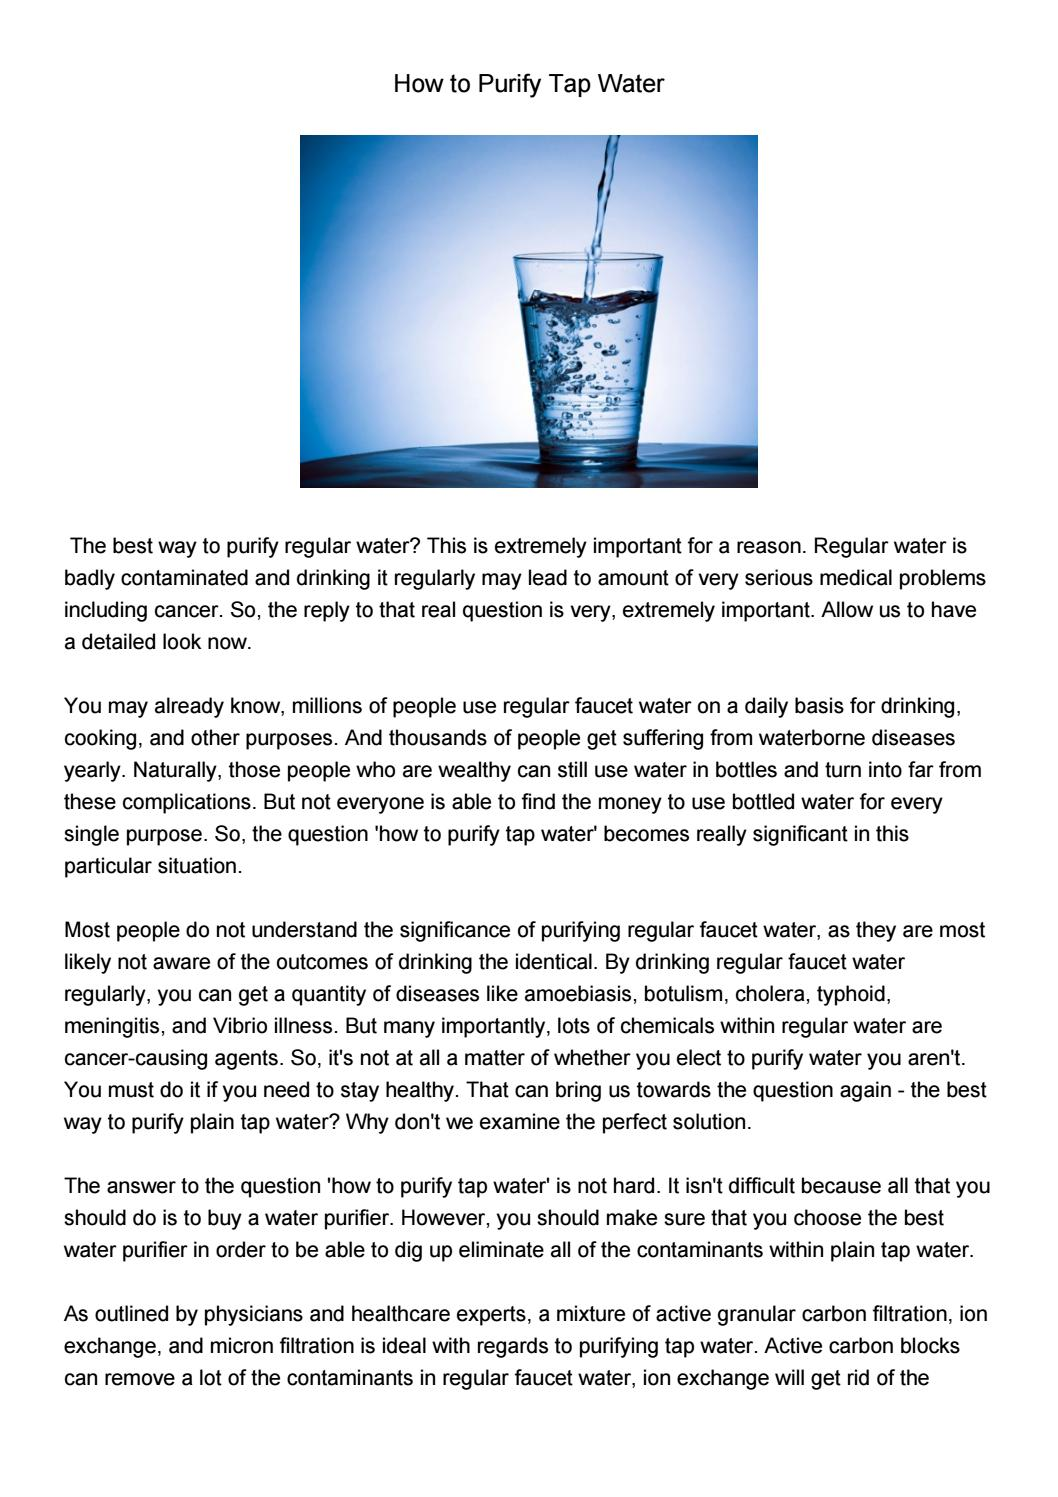 Howtopurifytapwater492 By Teresabaldwin Issuu